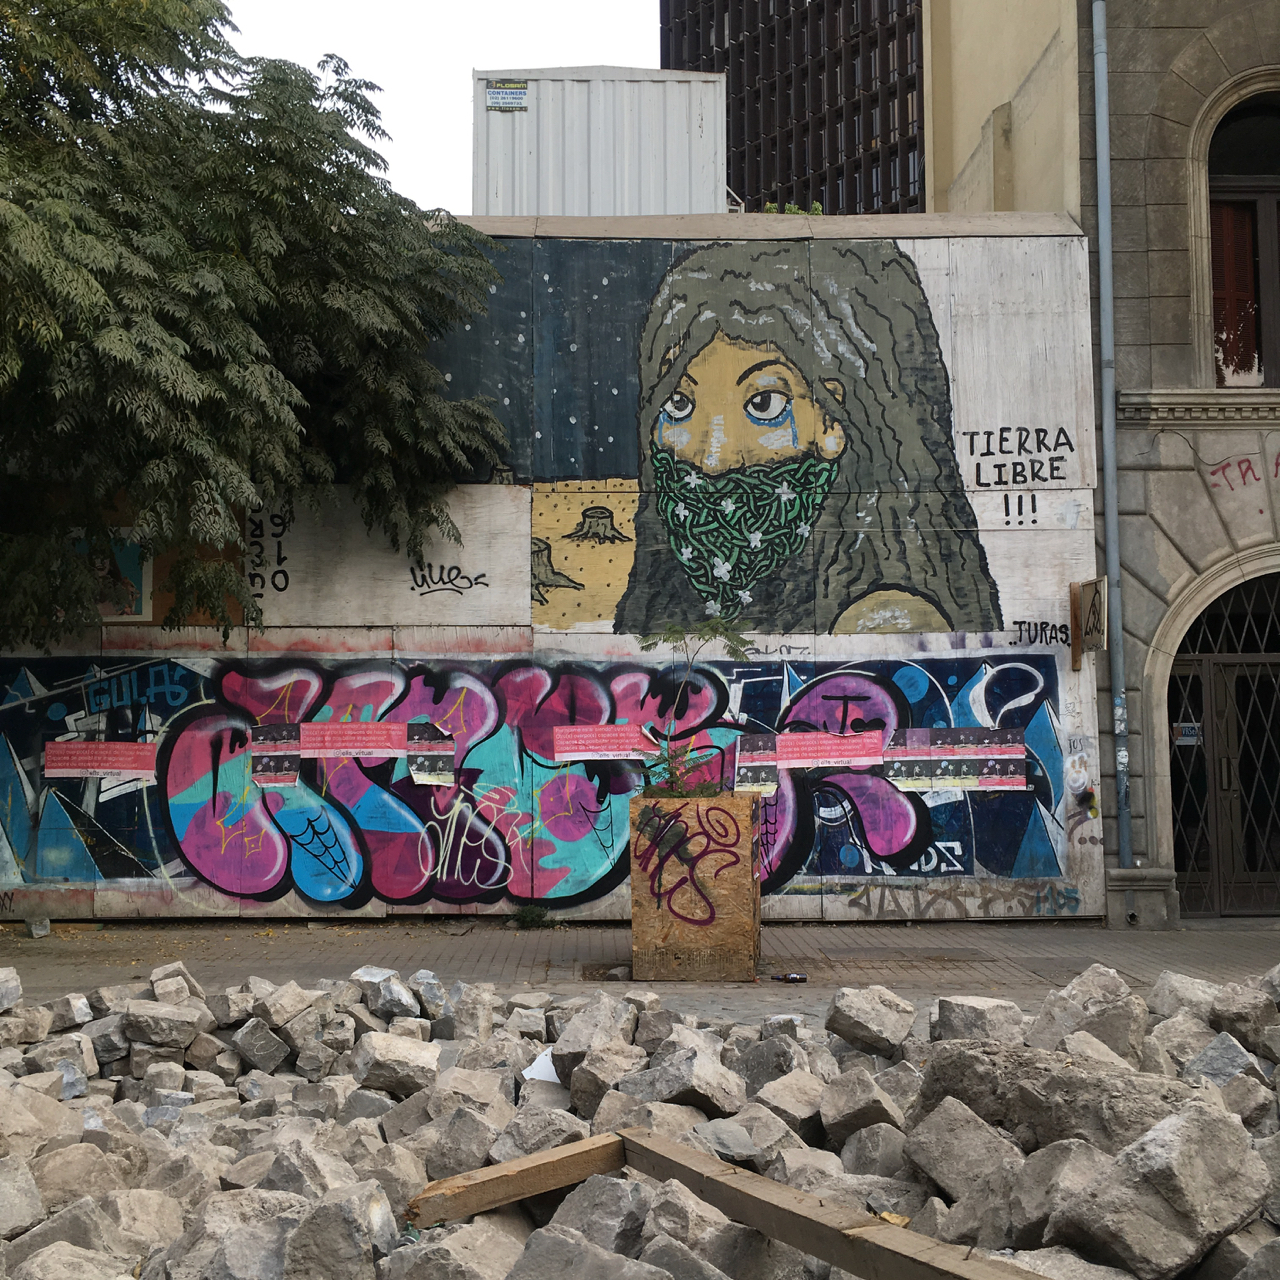 Chile_varie12